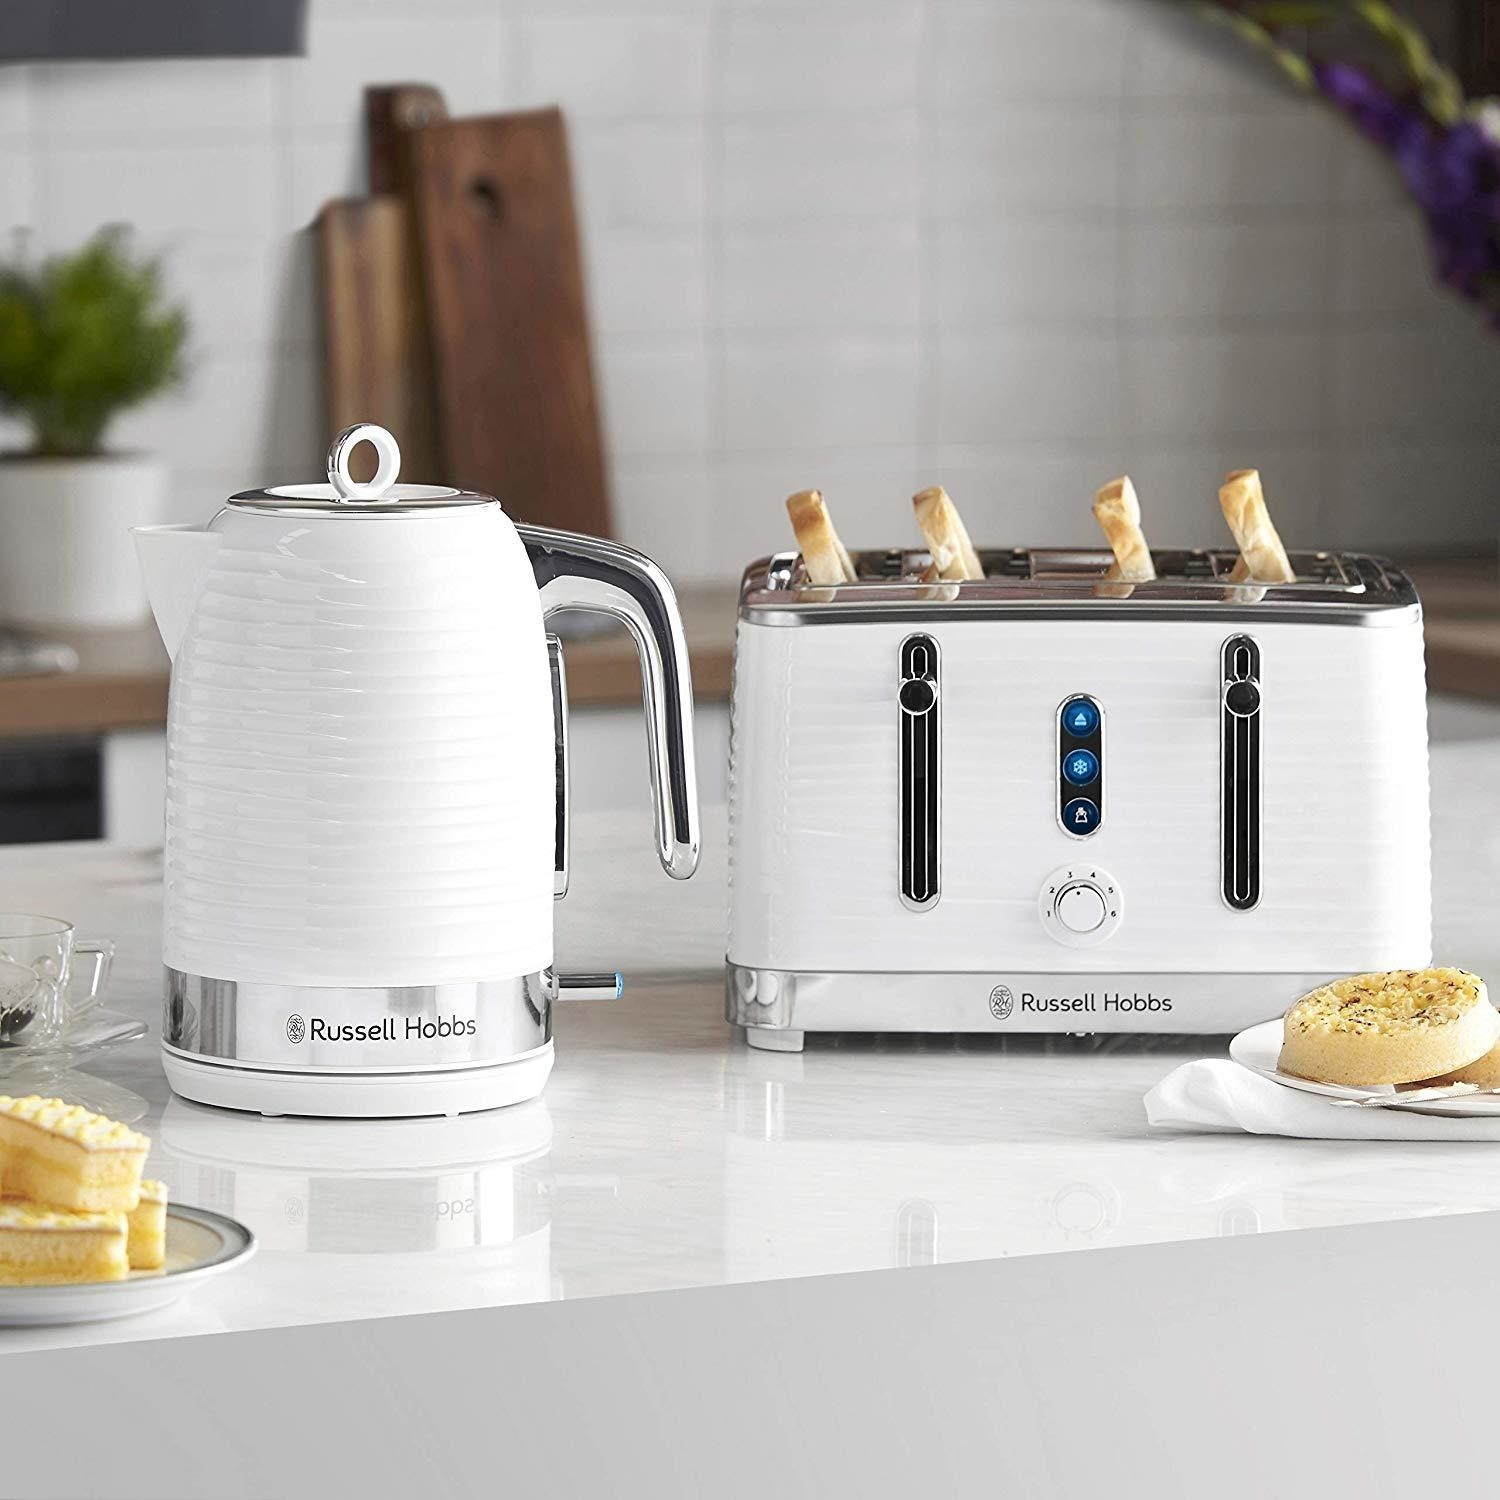 Black 4 Slot Toaster and Microwave Russell Hobbs Inspire Kettle